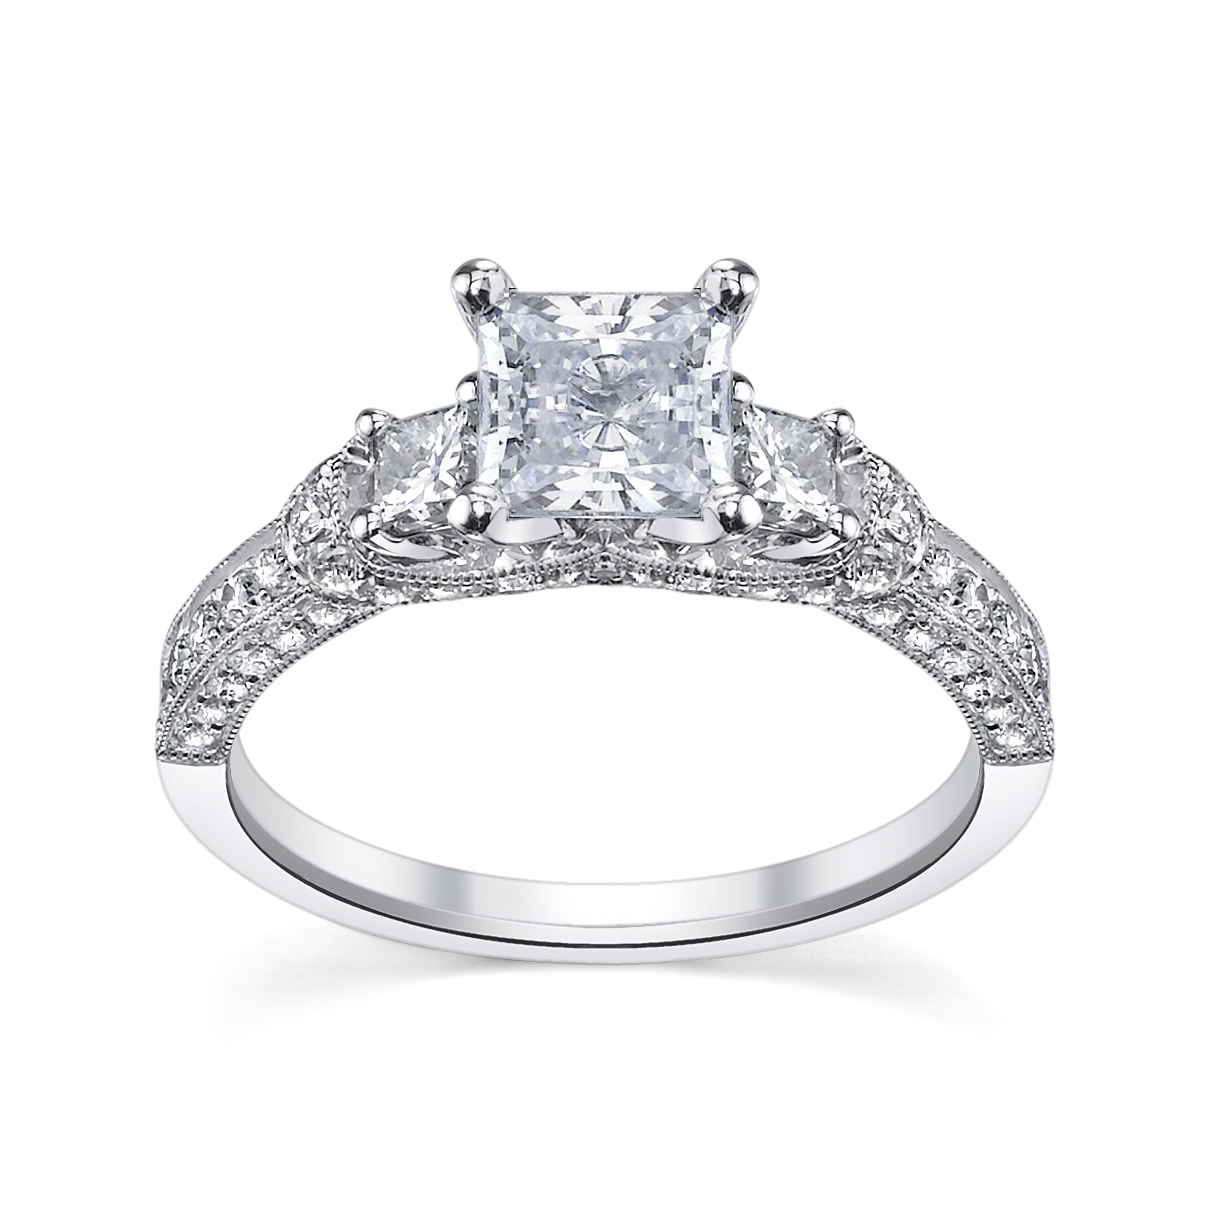 Threestone Princess Engagement Ring With Round Diamonds By Scott Kay,  Available At Www